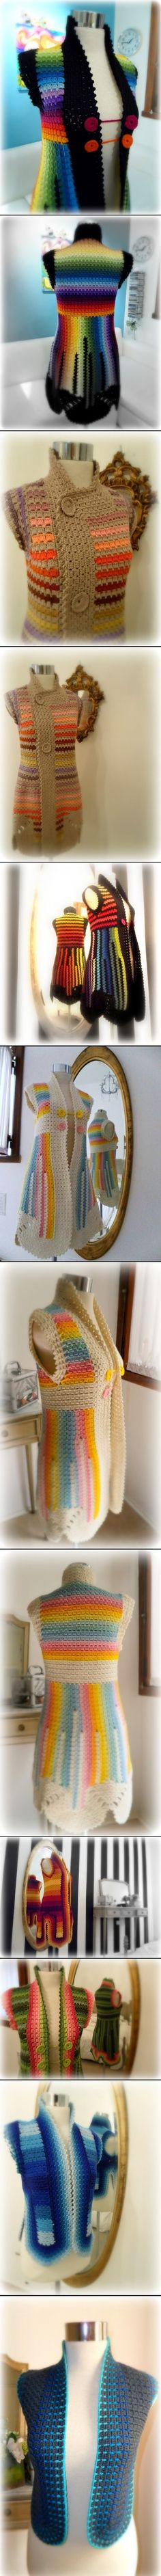 Crochet Jackets       ♪ ♪ ... #inspiration_crochet #diy GB http://www.pinterest.com/gigibrazil/boards/